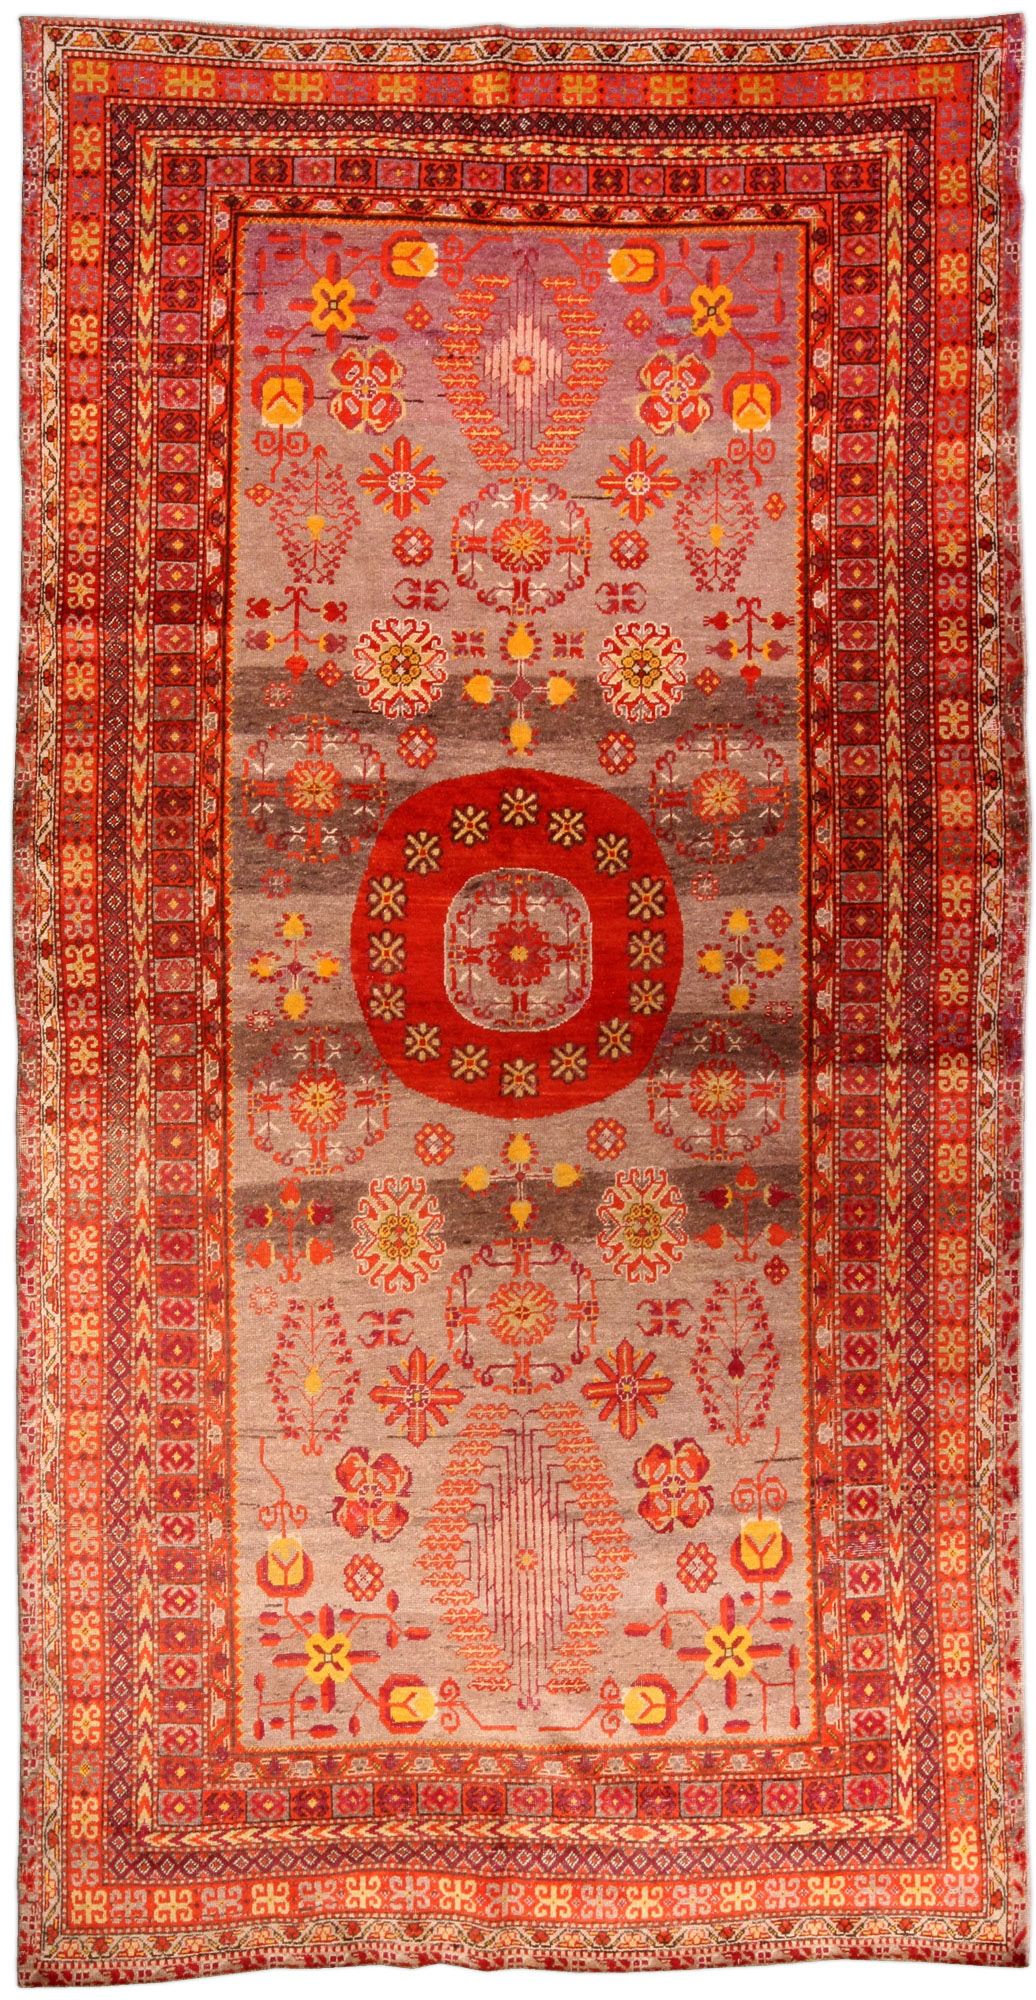 Five Things You Didn T Know About Samarkand Rugs By Doris Leslie Blau